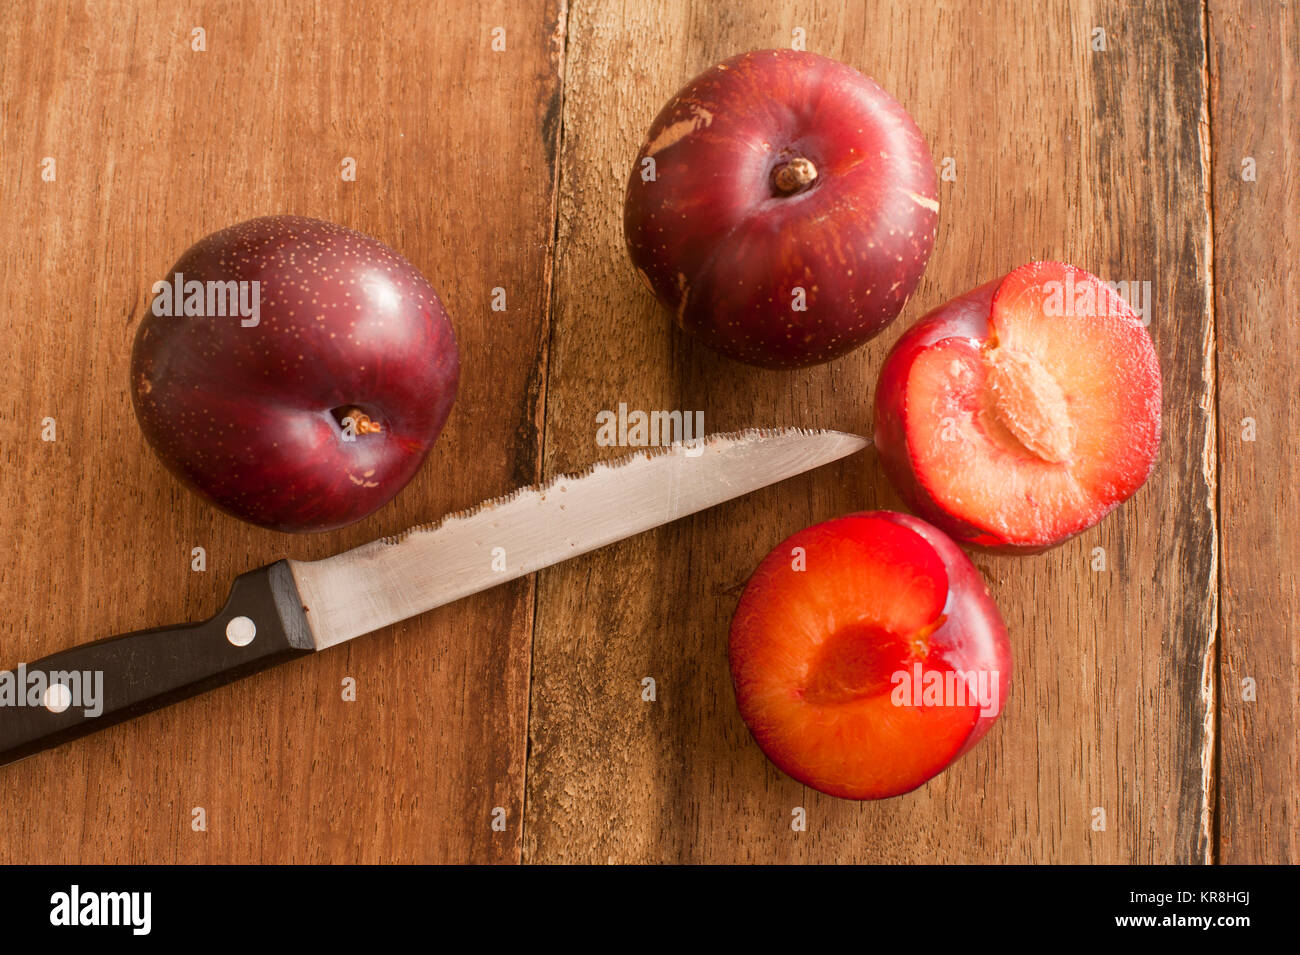 Organic Plums and Sharp Knife on Wooden Table Stock Photo